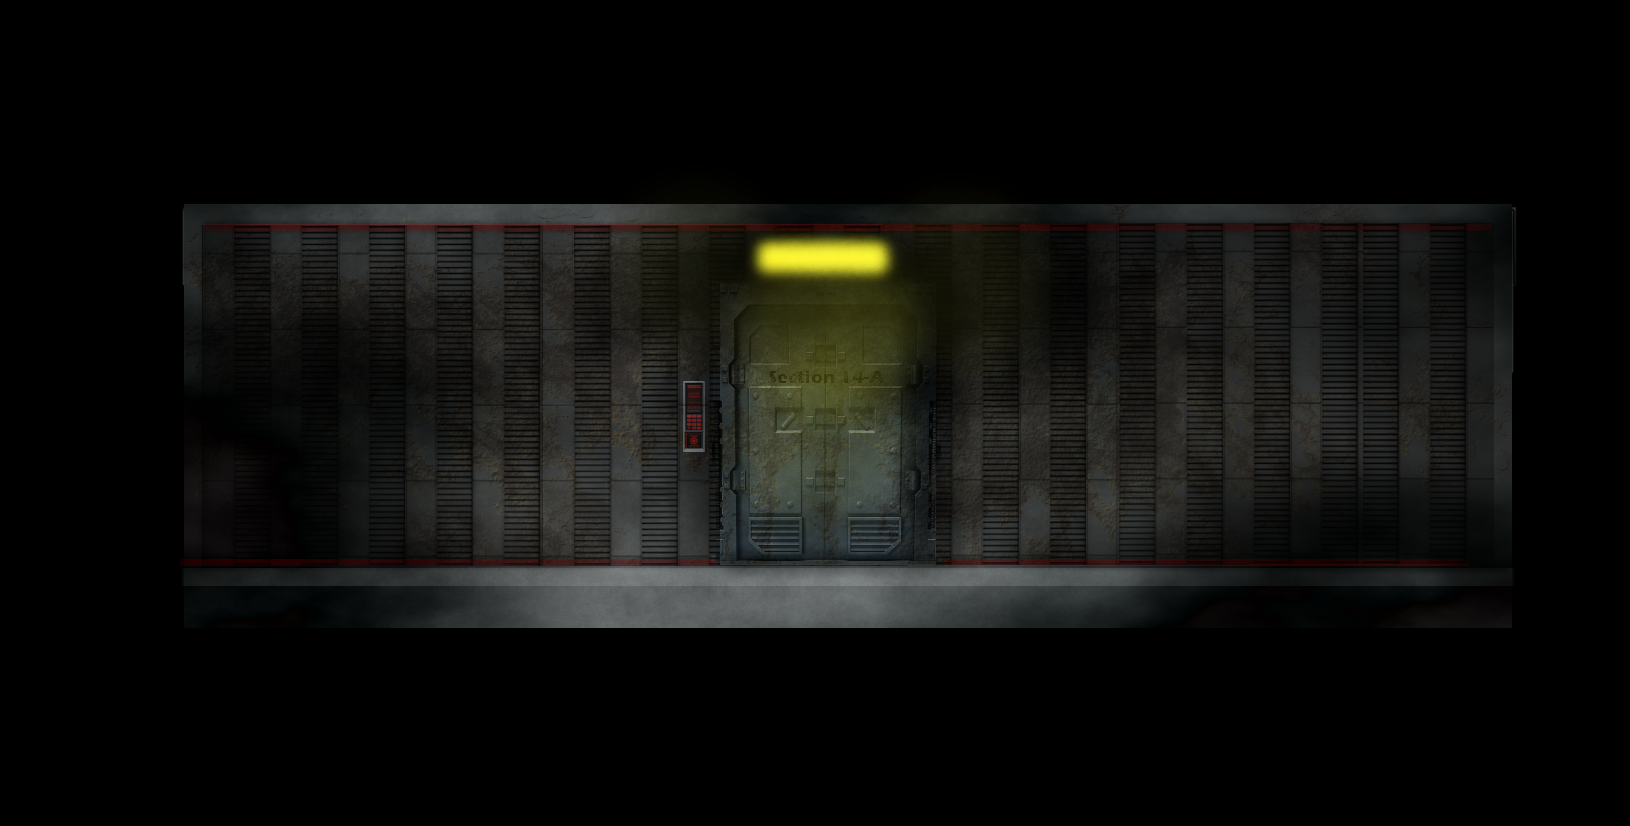 blogs/jtougas/attachments/59964-section-14-sci-fi-hallway.png